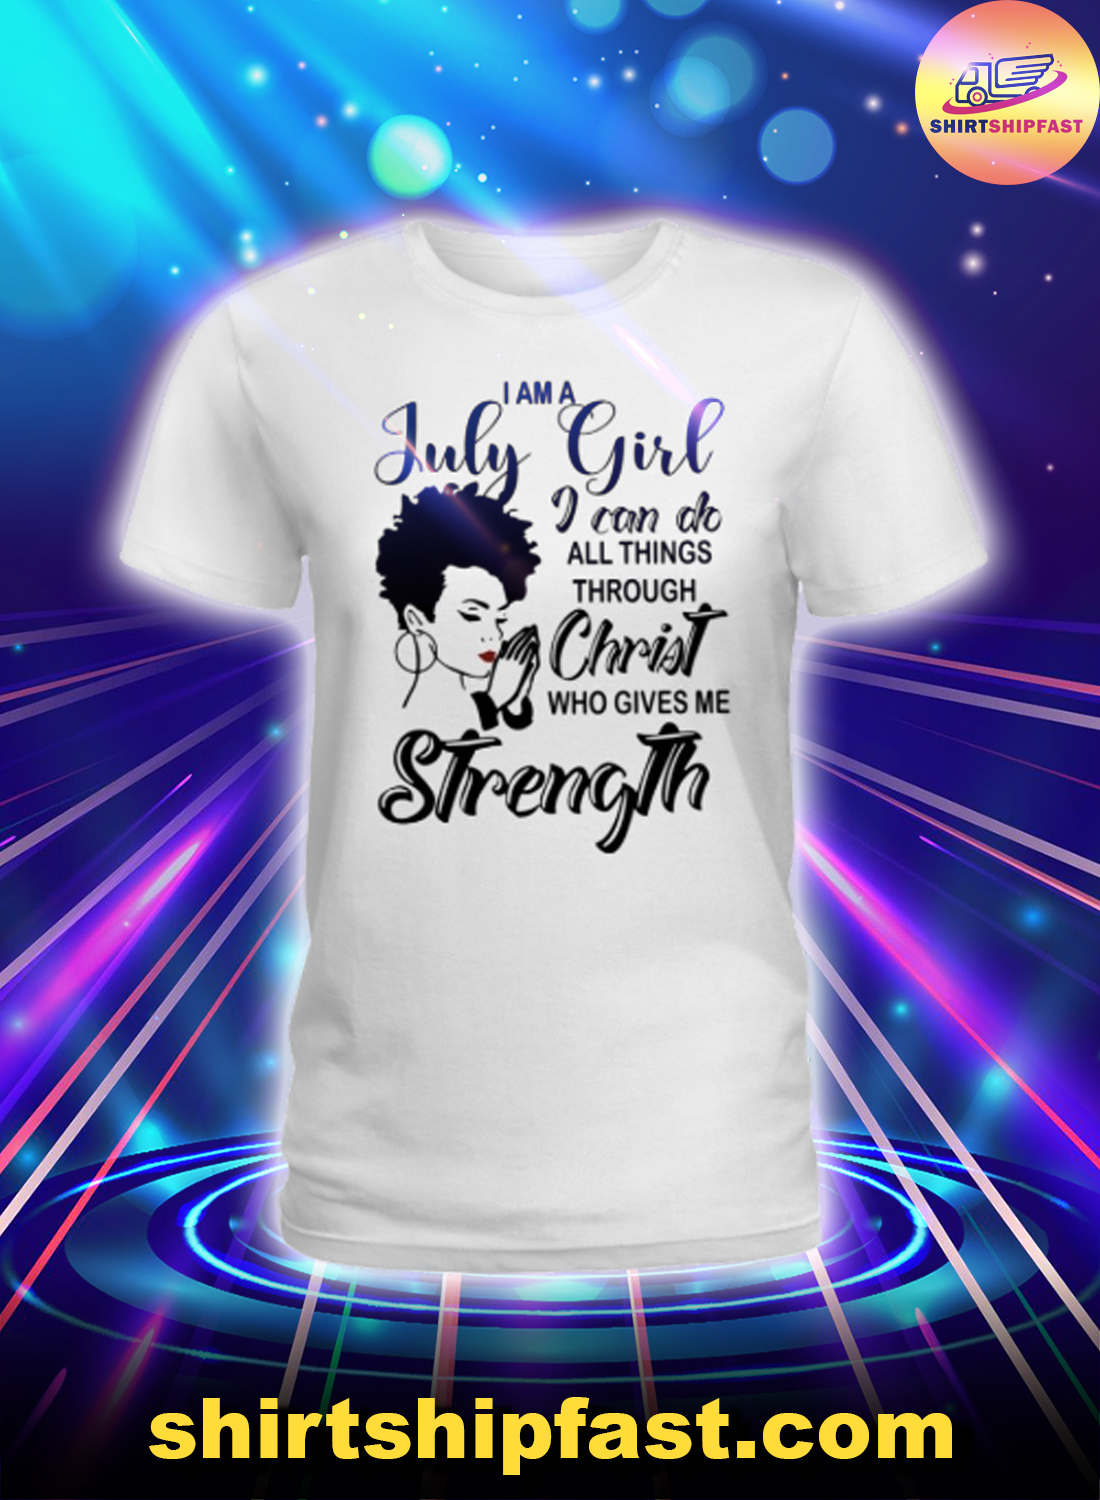 I am a July girl I can do all things through Christ who gives me strength lady shirt